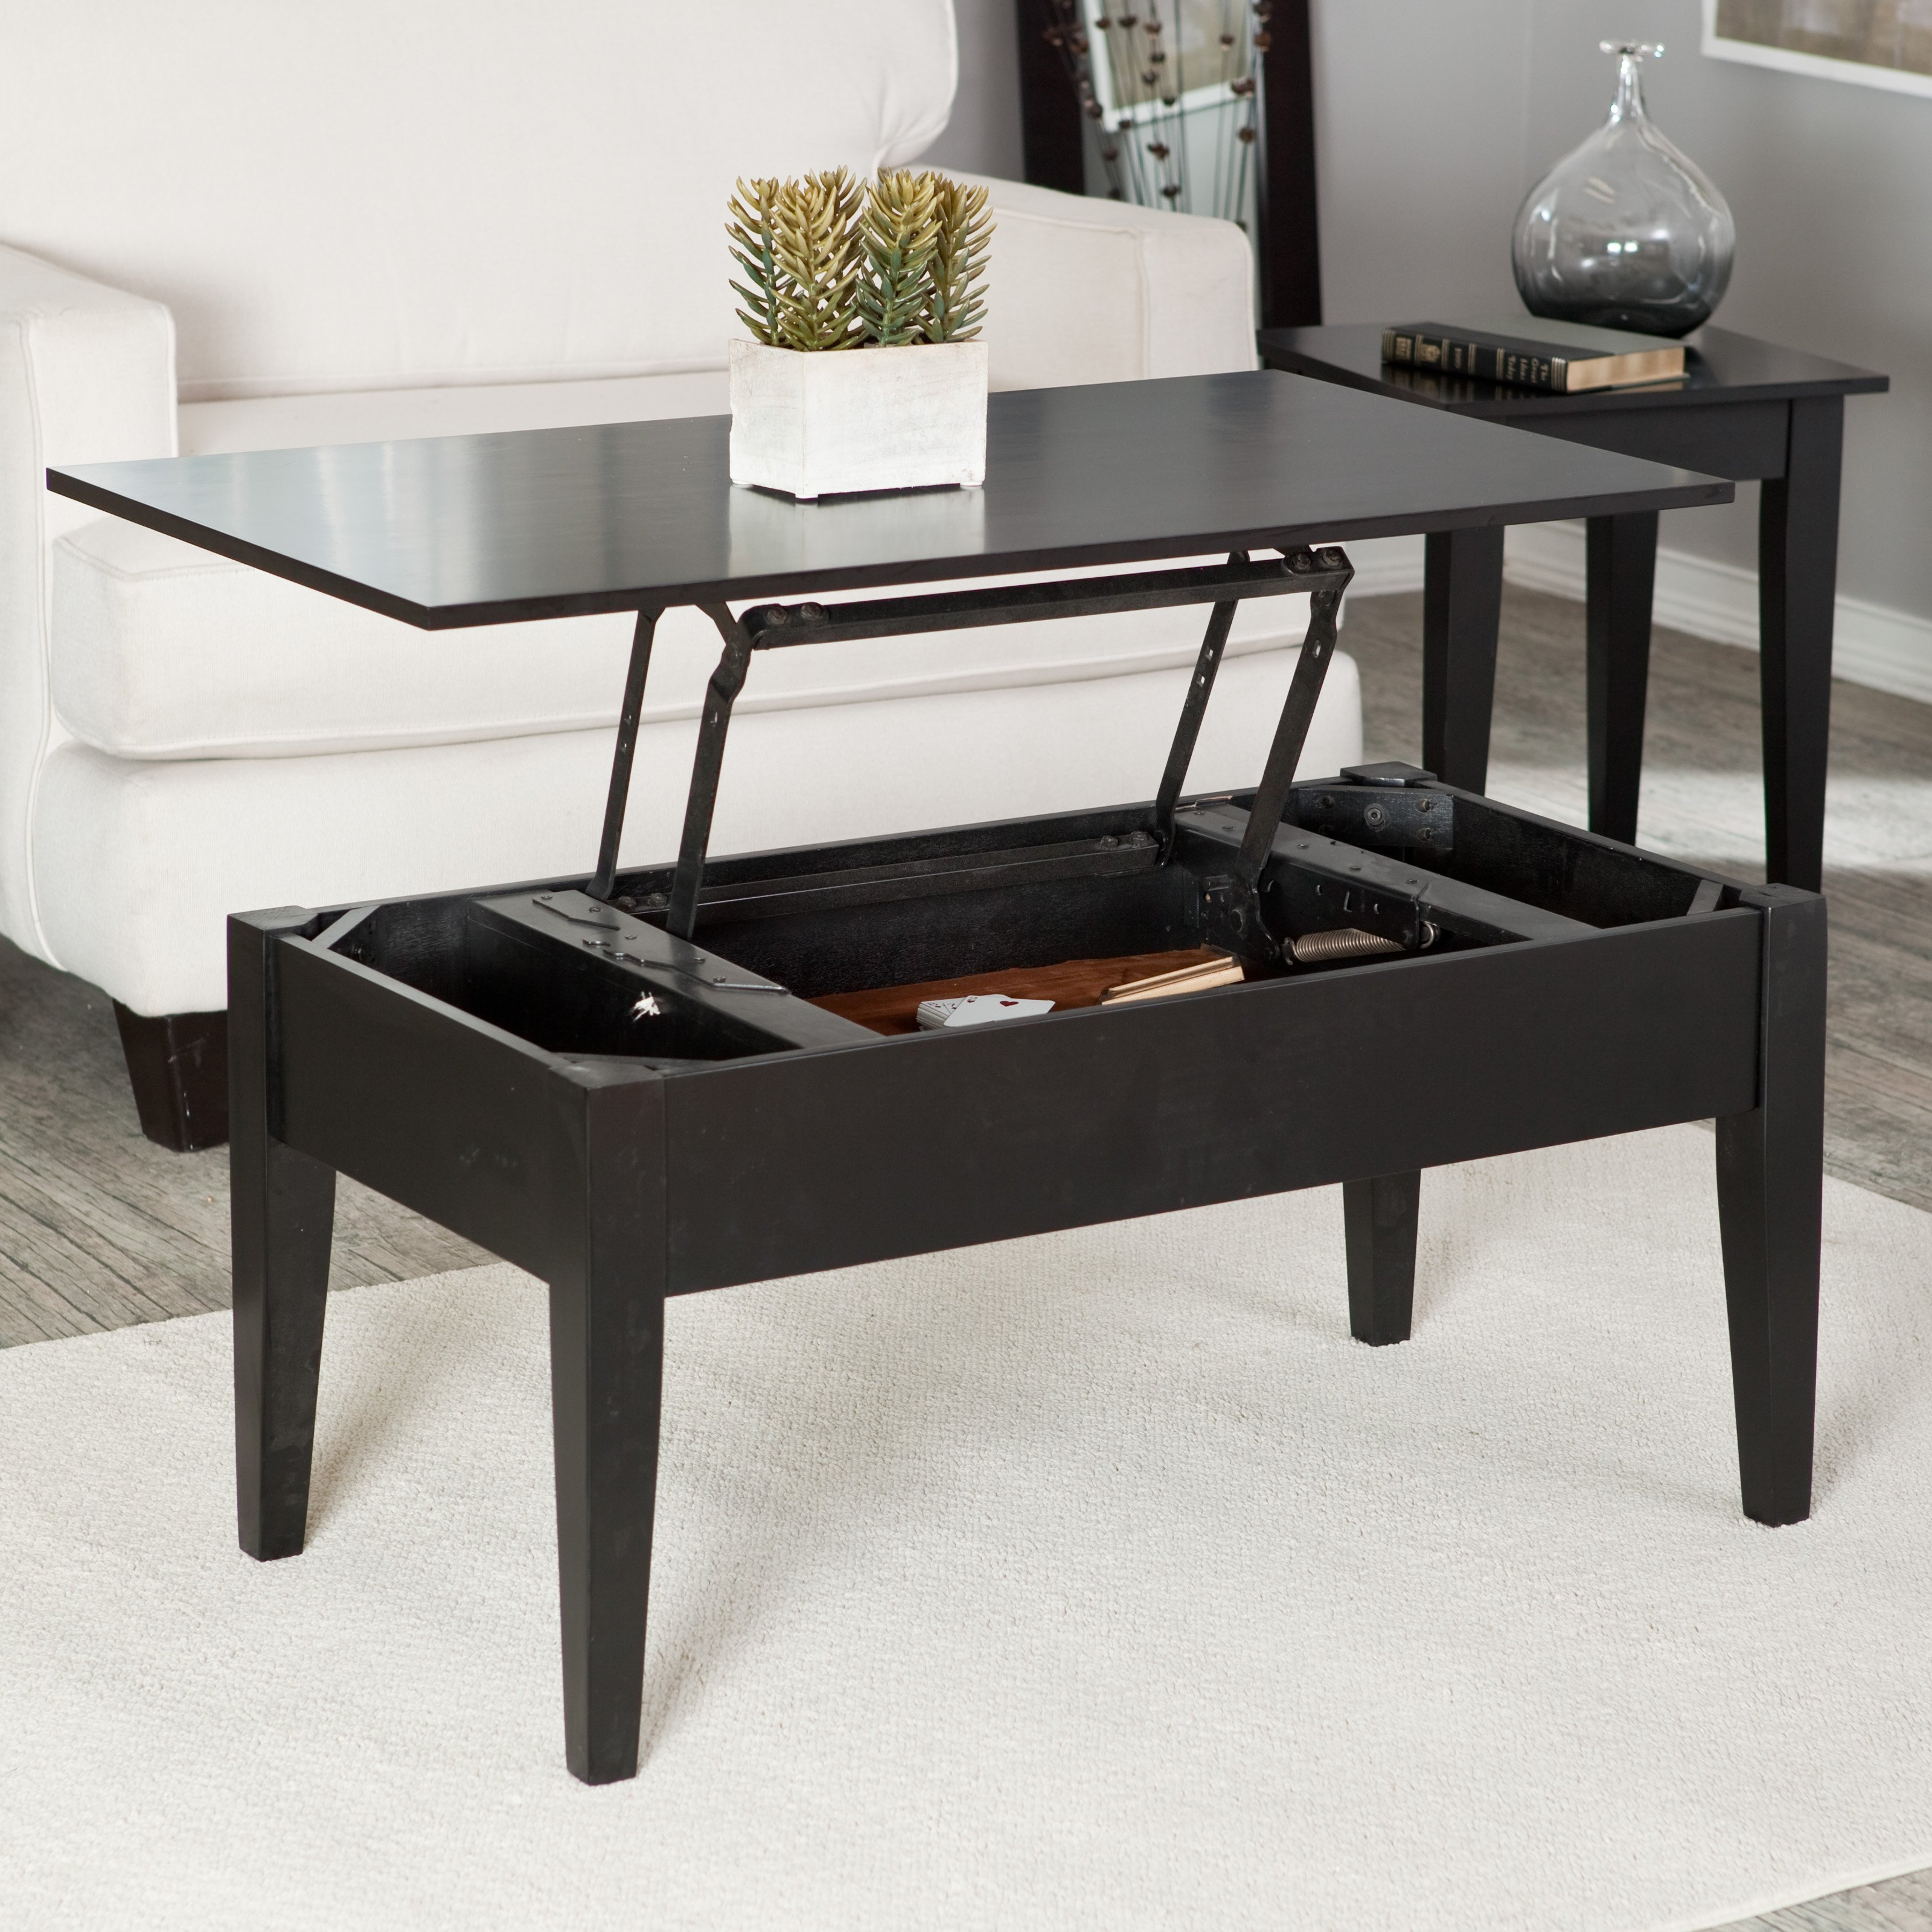 Small Space Furniture 11 Smart Buys For Tiny Apartments Curbed